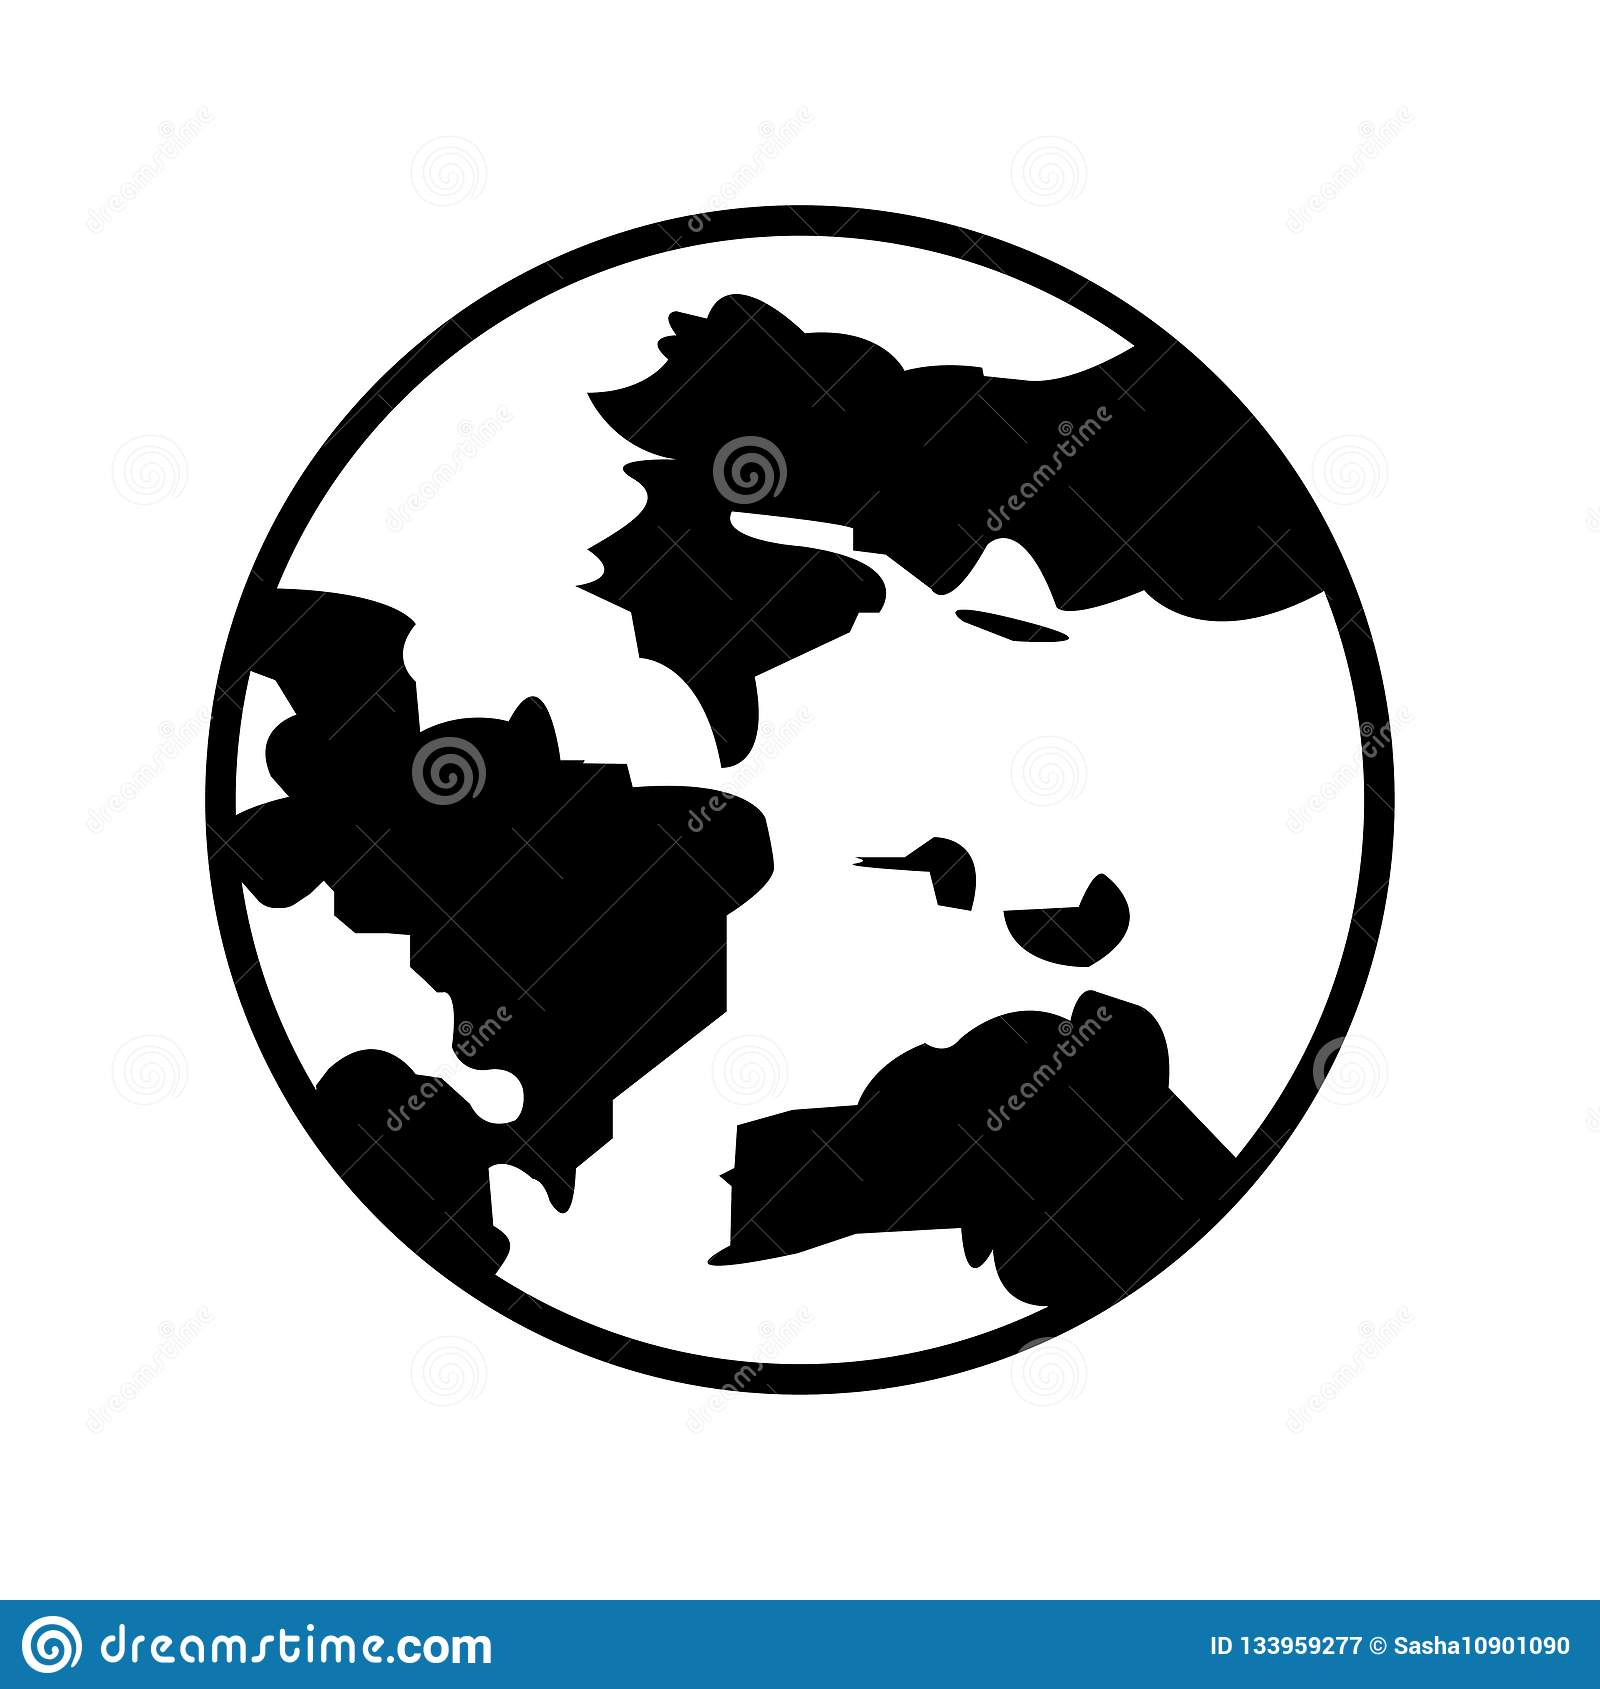 Earth symbol. Earth icon. Globe,World icon. Best modern flat pictogram illustration sign for web and mobile apps.